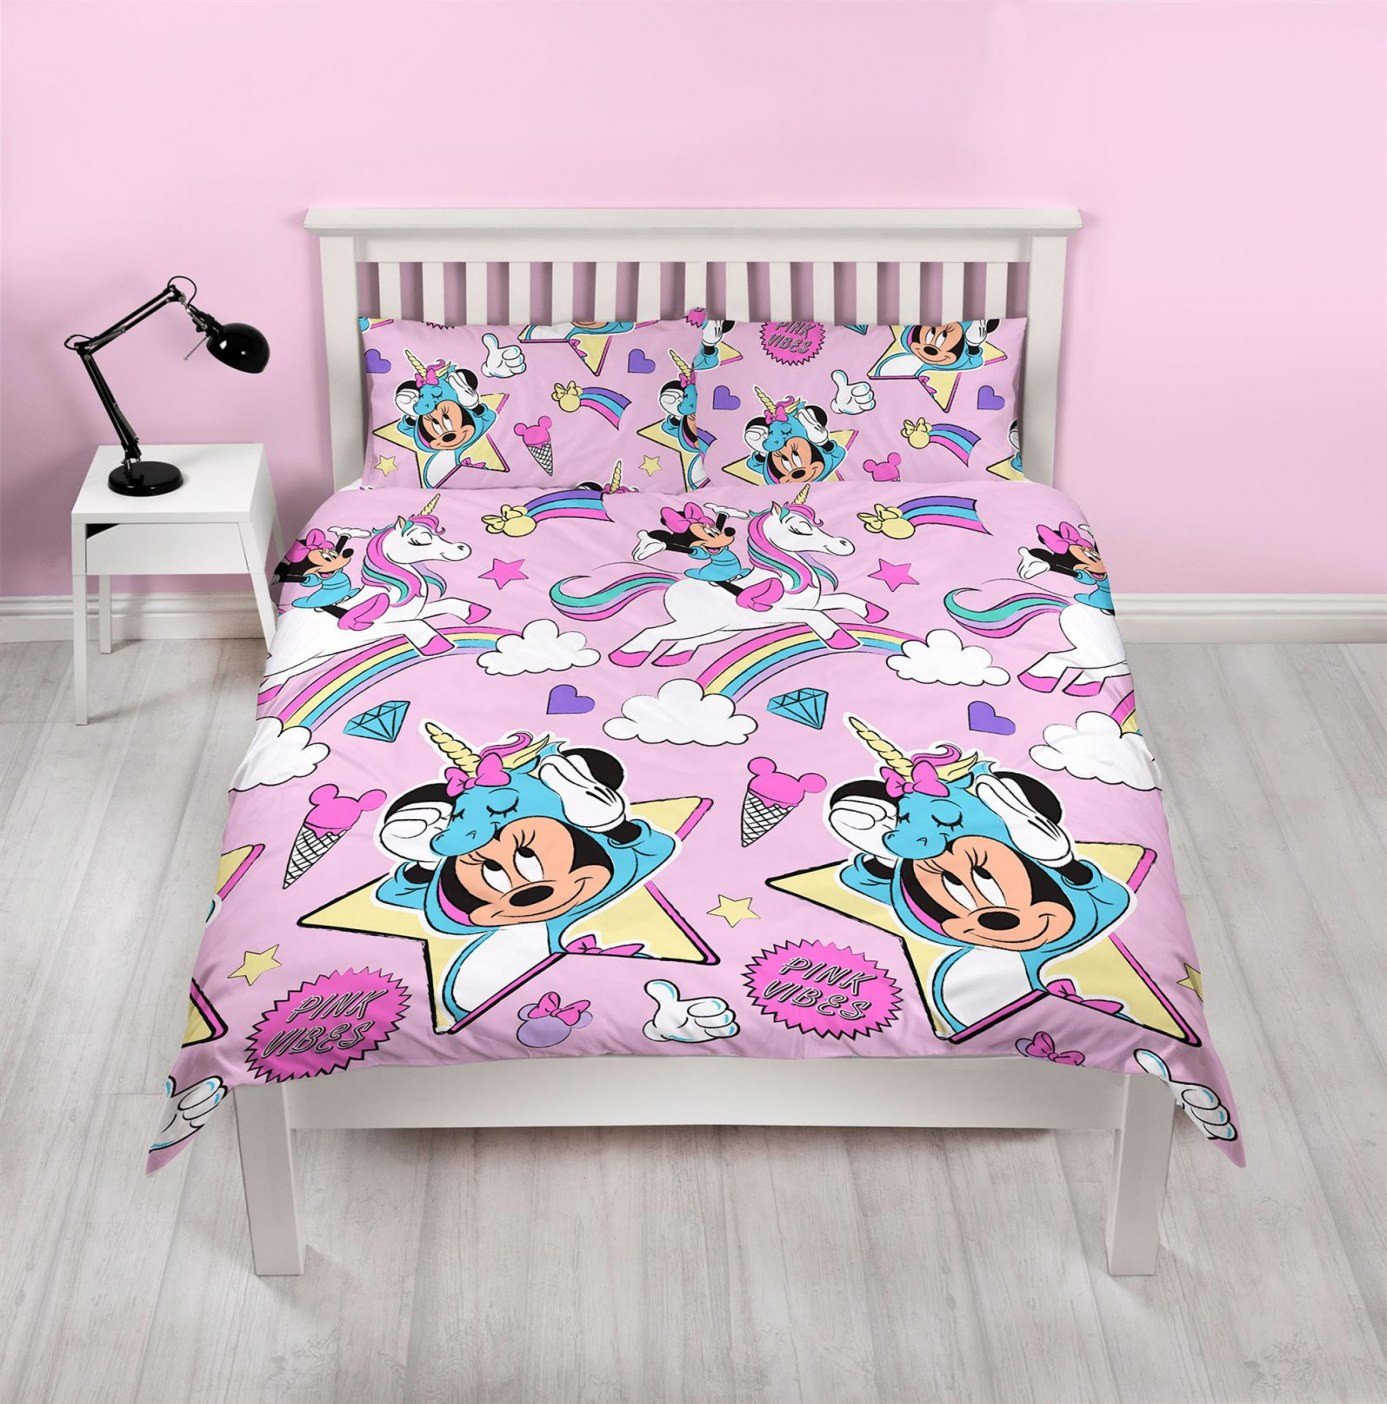 Minnie Mouse Bedroom Ideas Beautiful Minnie Mouse Room In A Box Details About Disney Mickey